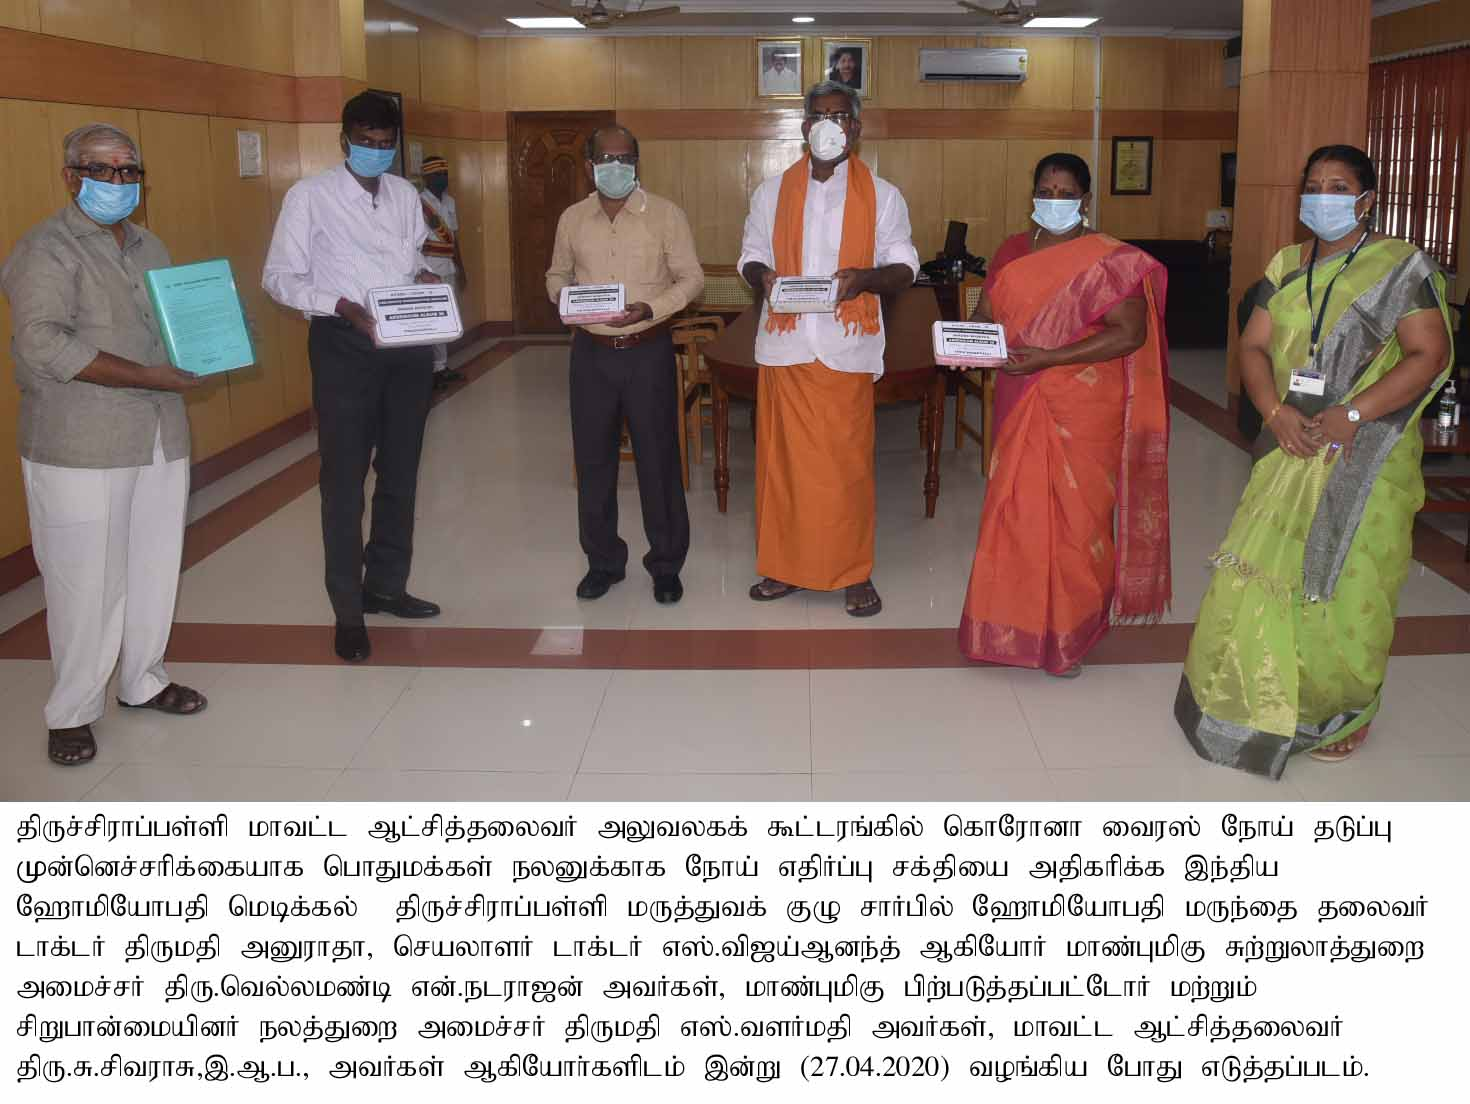 homeopathy medicine handed over to Hon'ble Ministers for Distribution